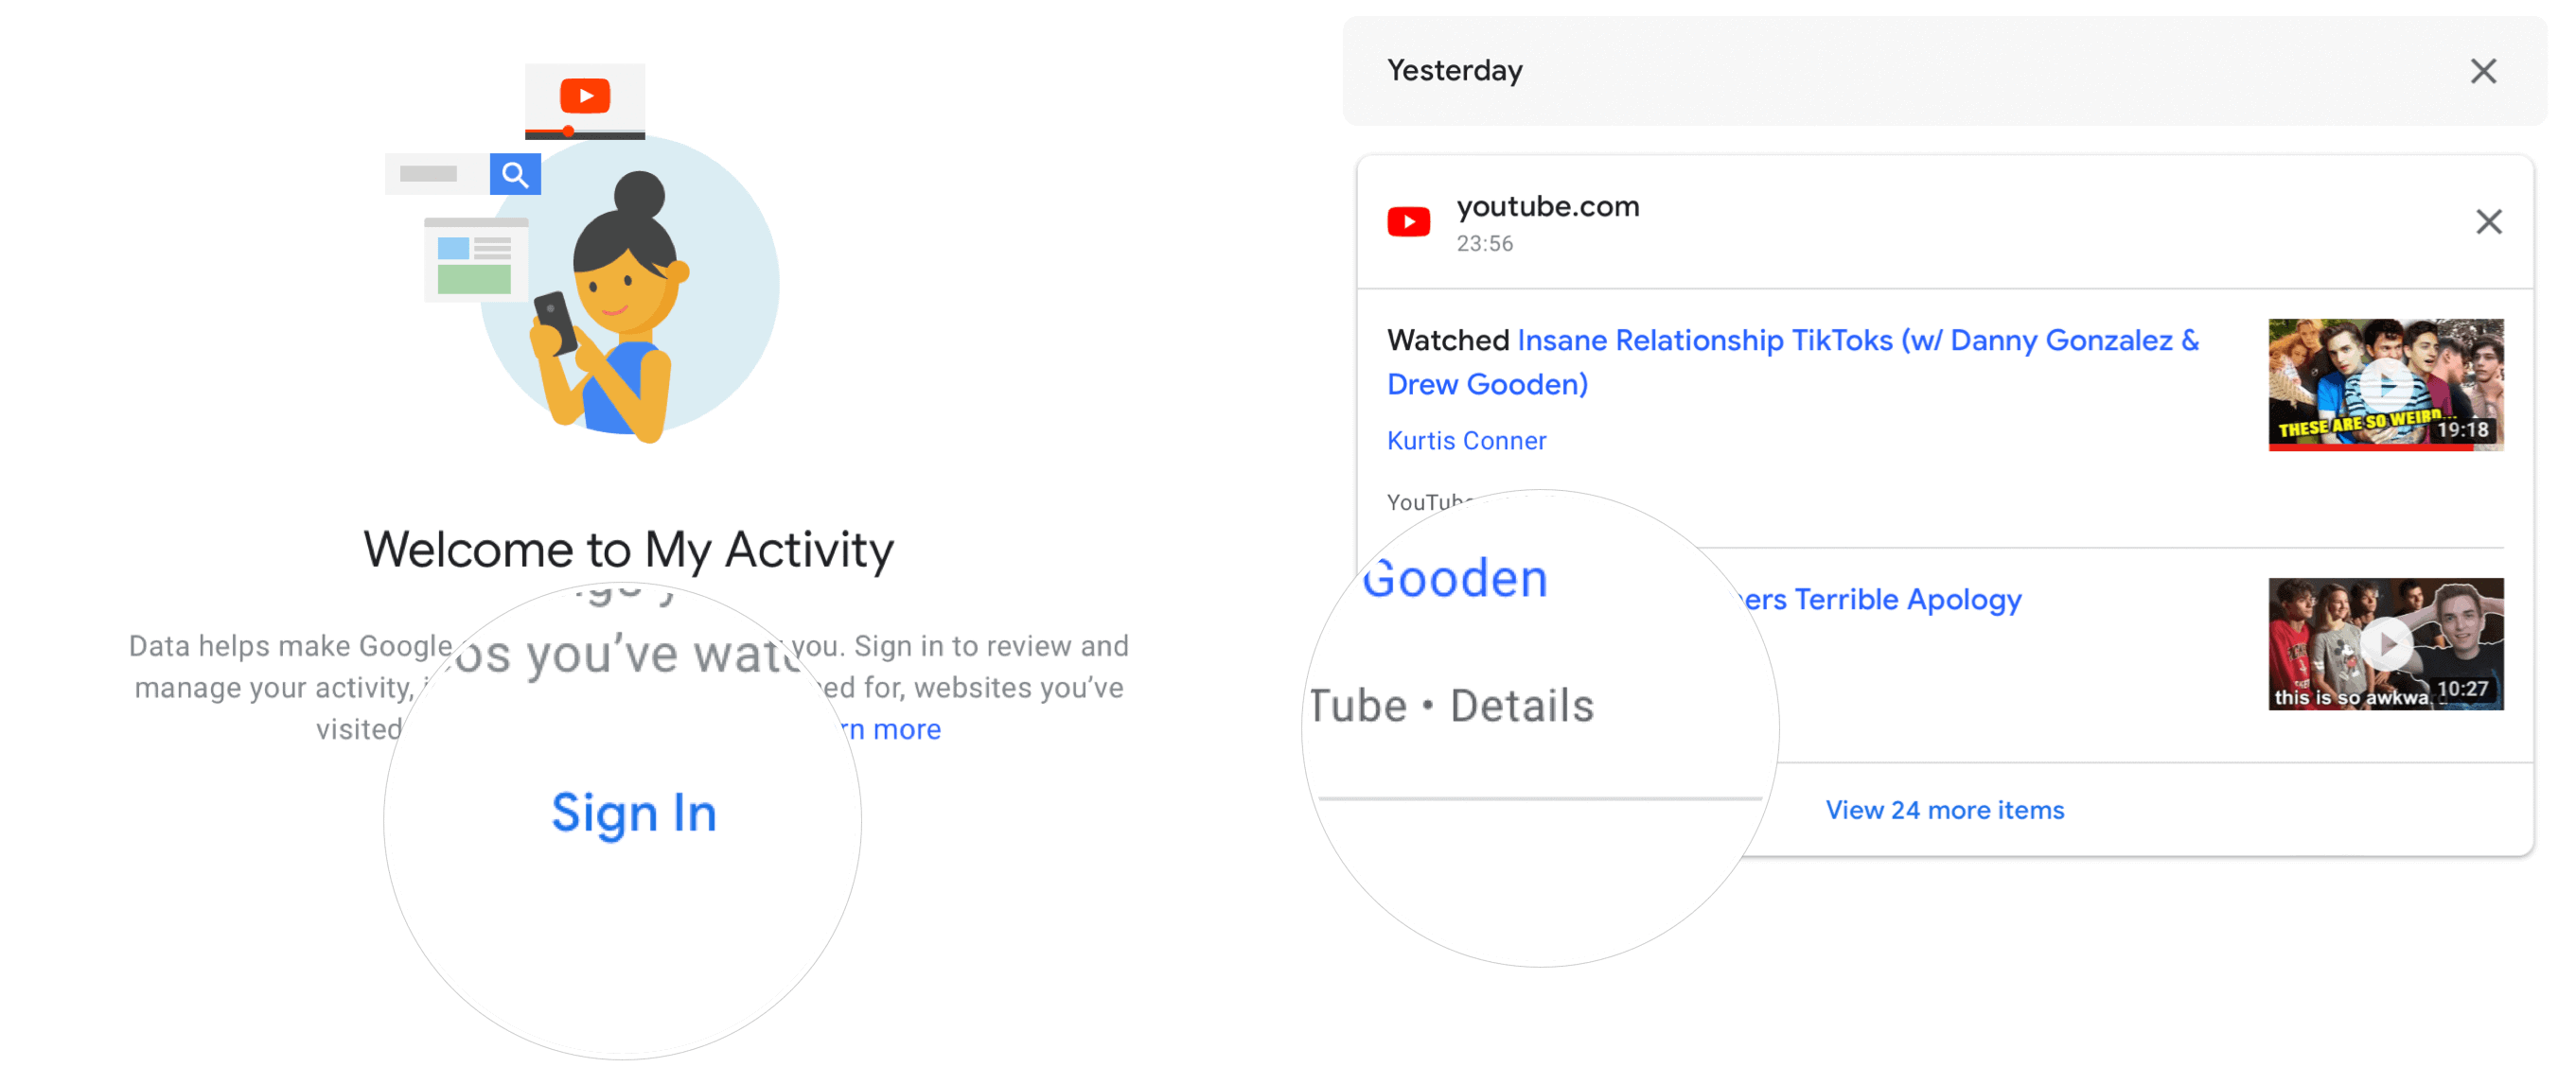 YouTube recommendations: delete videos